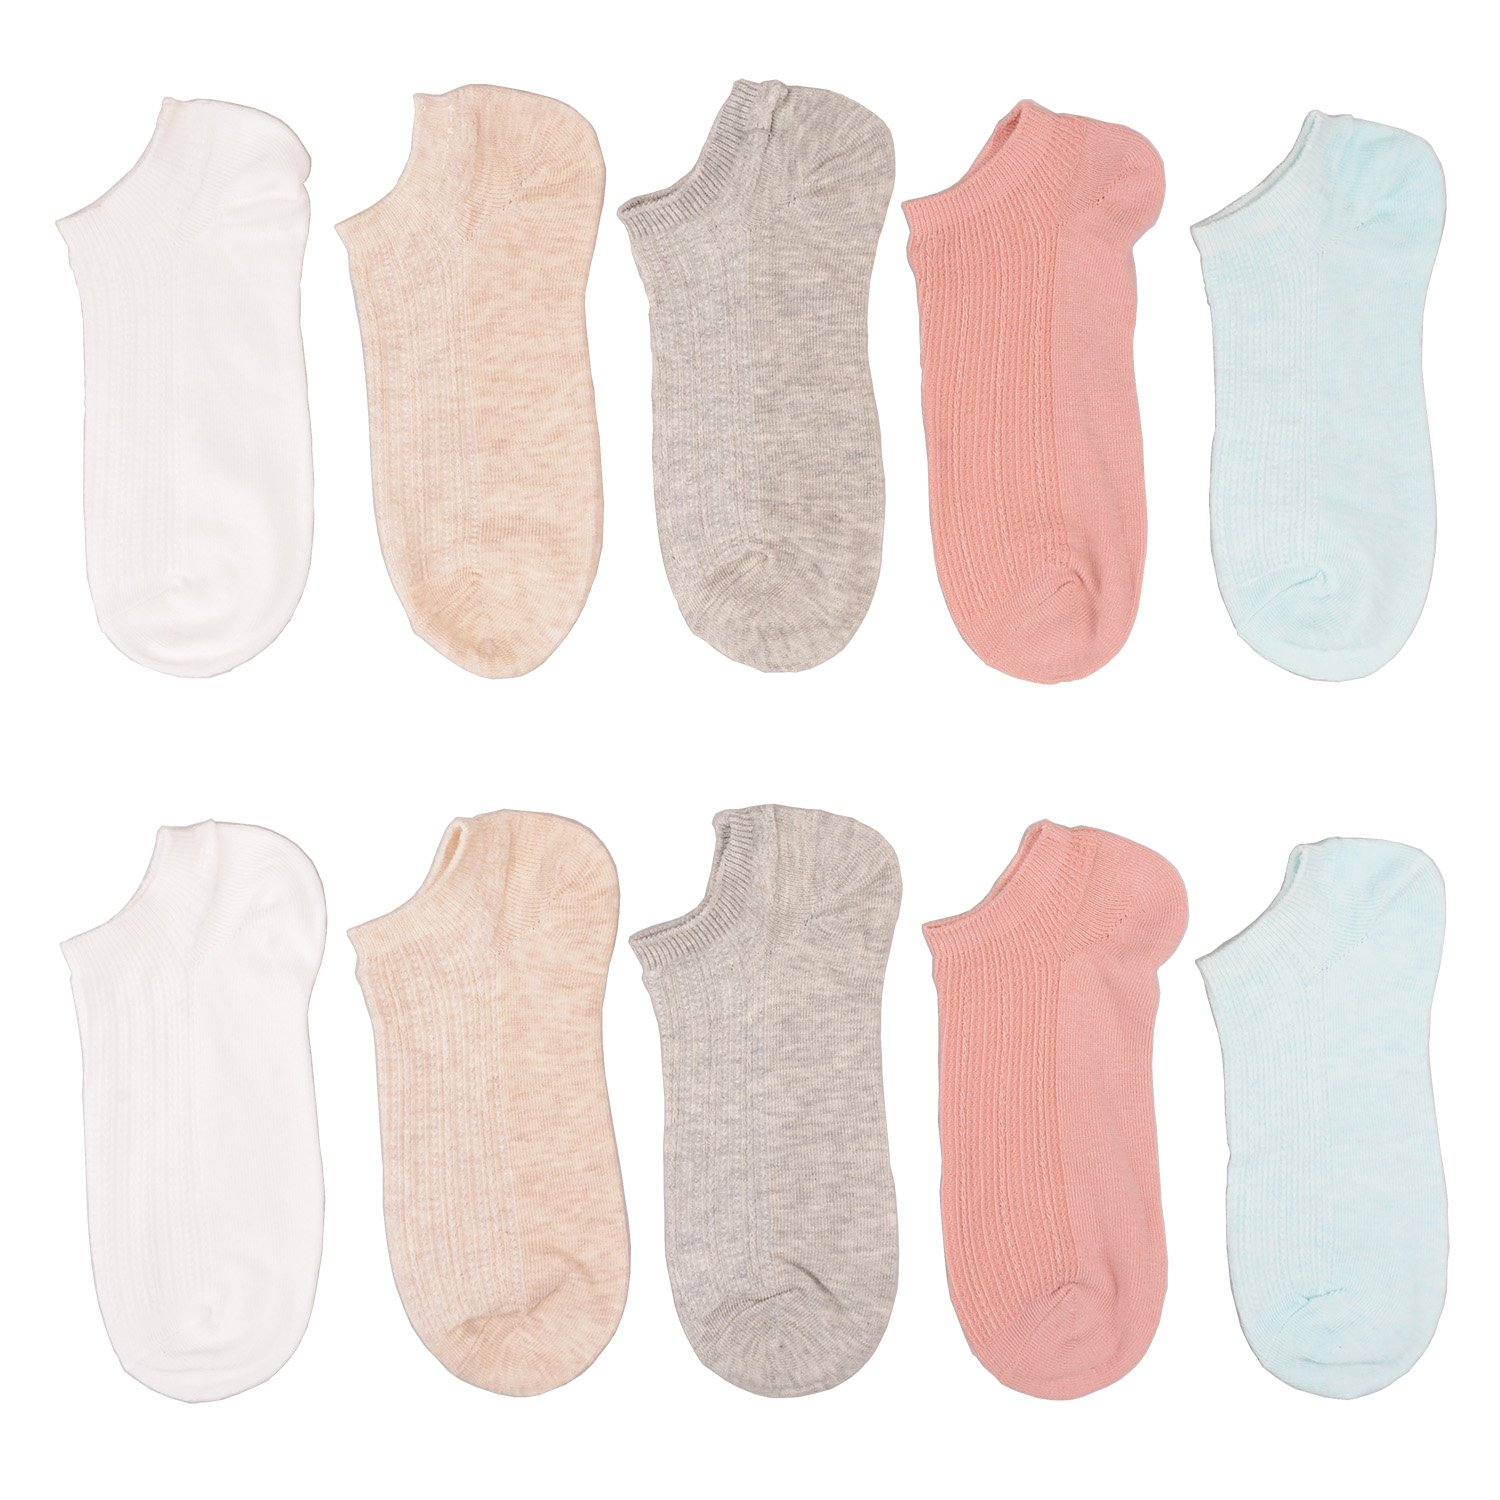 Tandi Kids Girls Cotton Low Cut No Show Socks 5 Pairs Pack (8-11 Years/Little Kid 12M-2/18cm-20cm, low-cut)